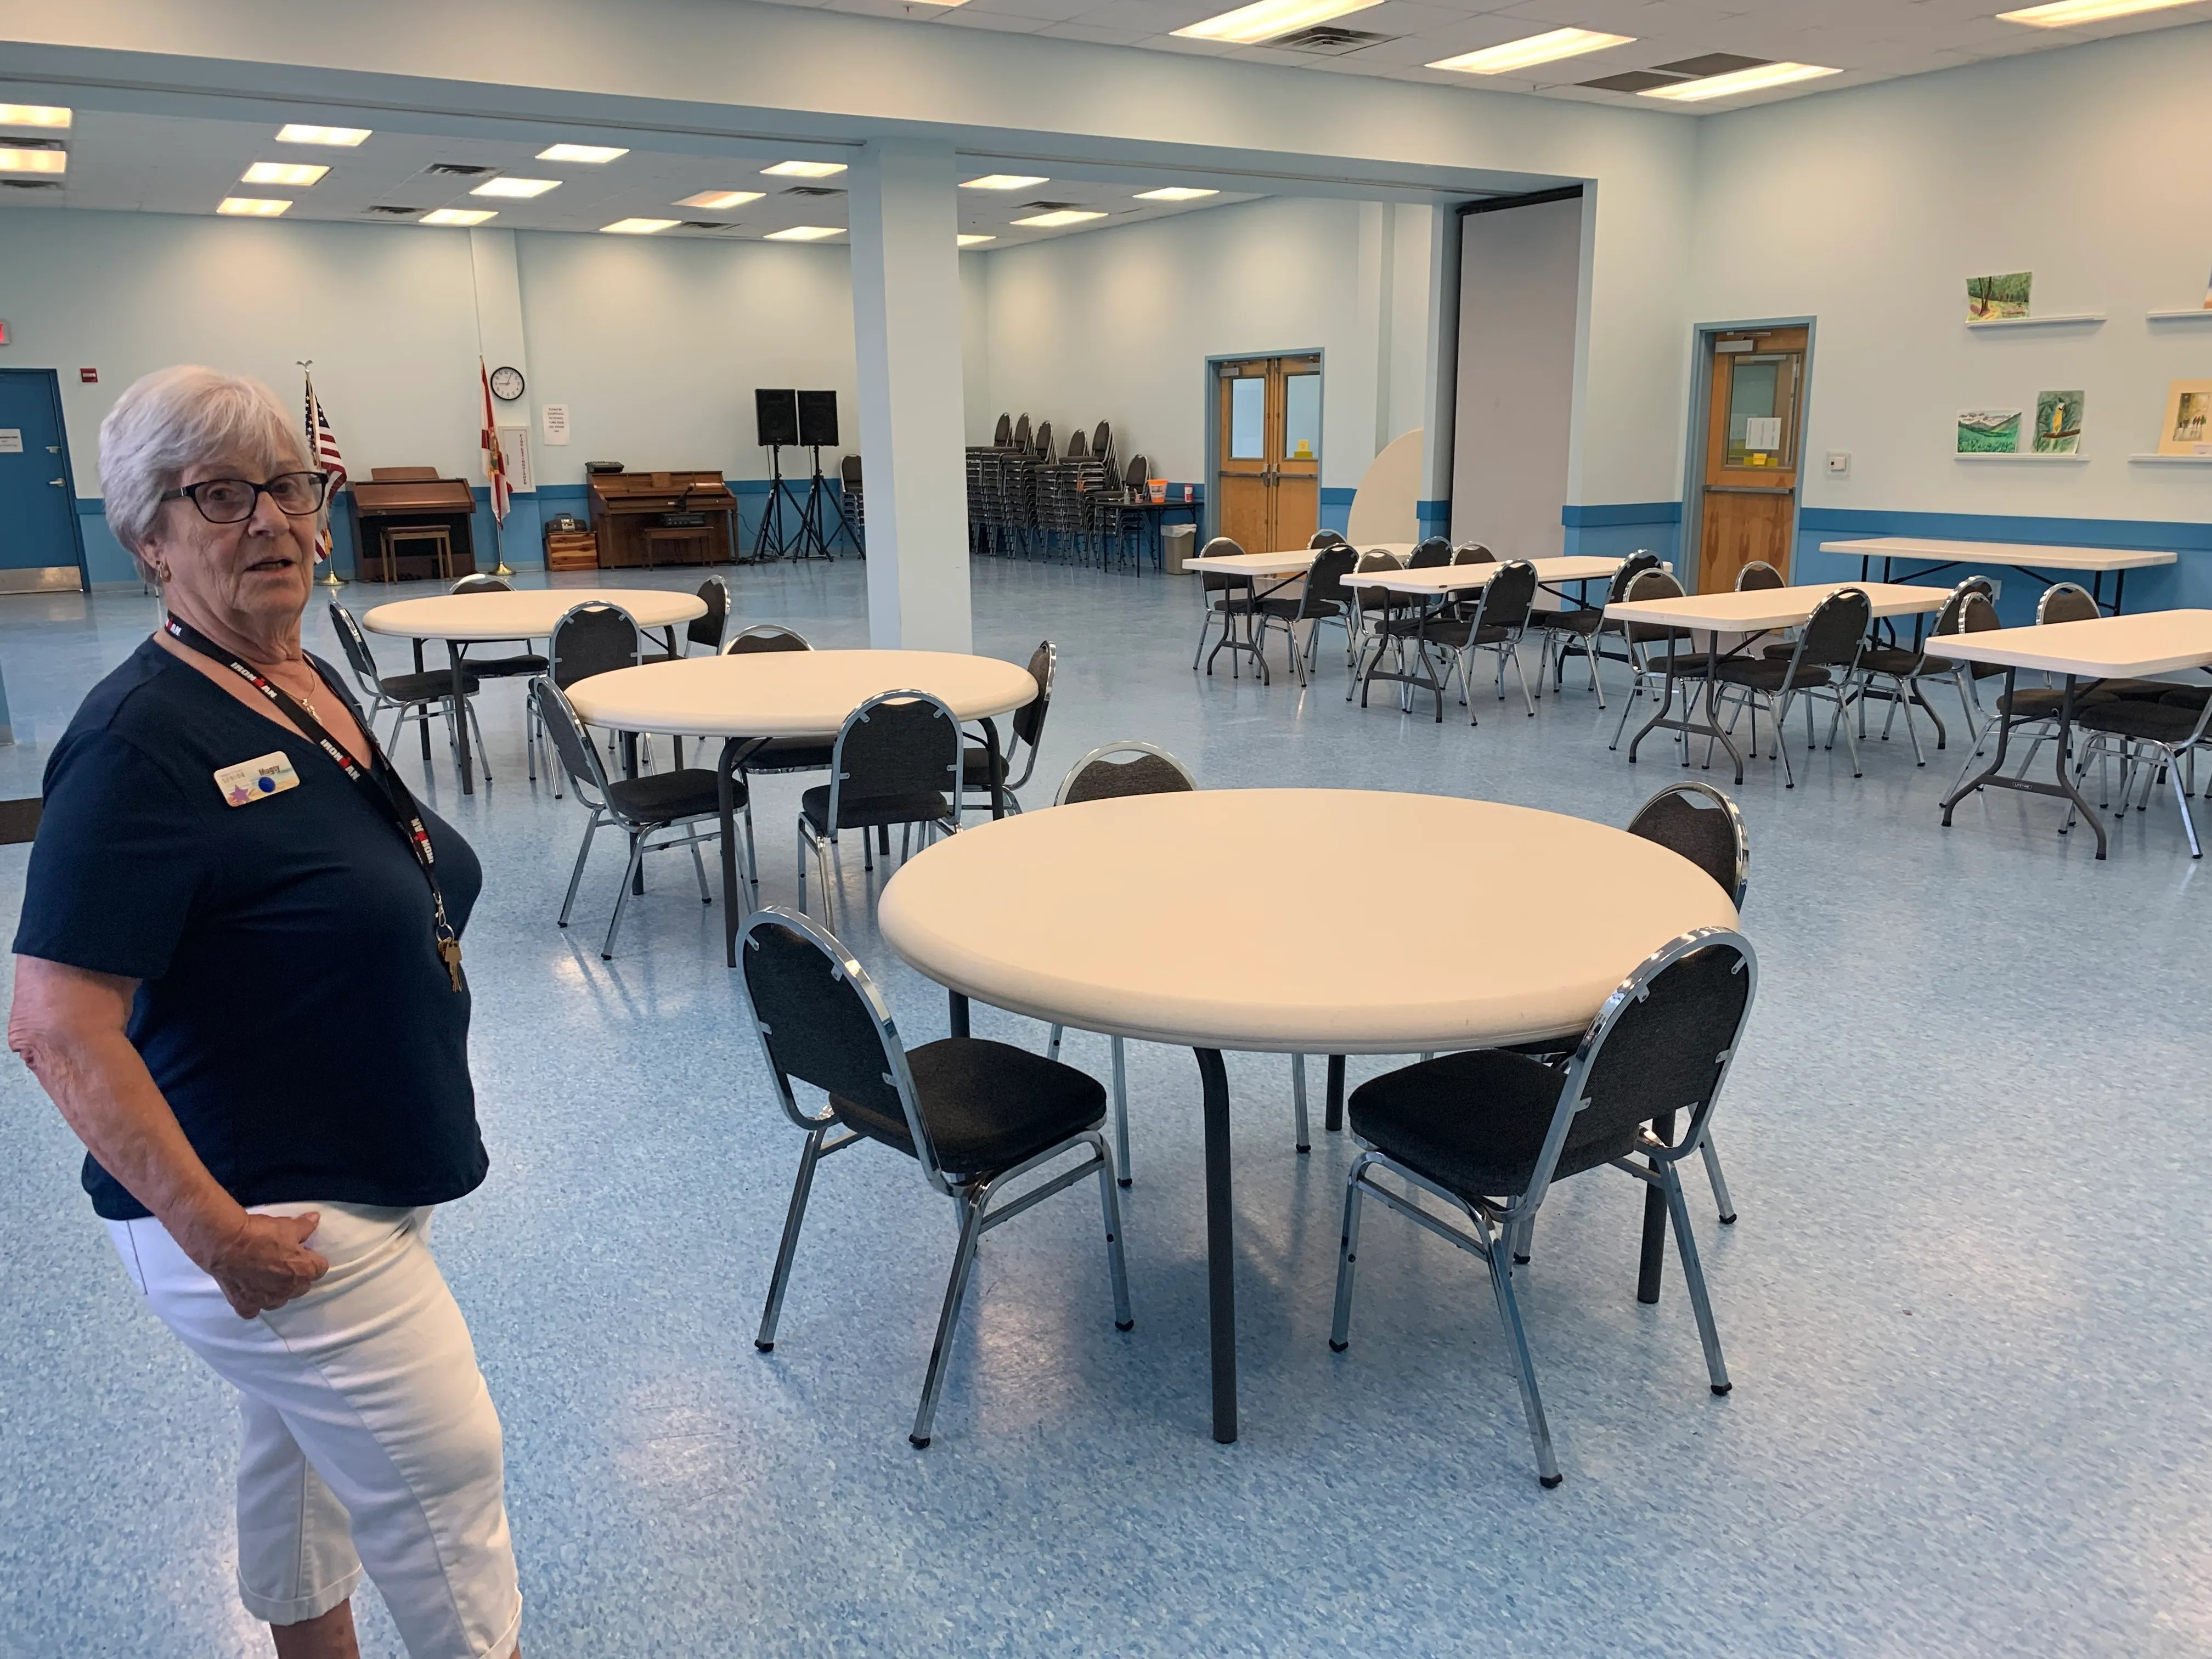 Mugsy Parens stands in the Oatfield Center's cafeteria area, where Coffee Shoppe is held each week.